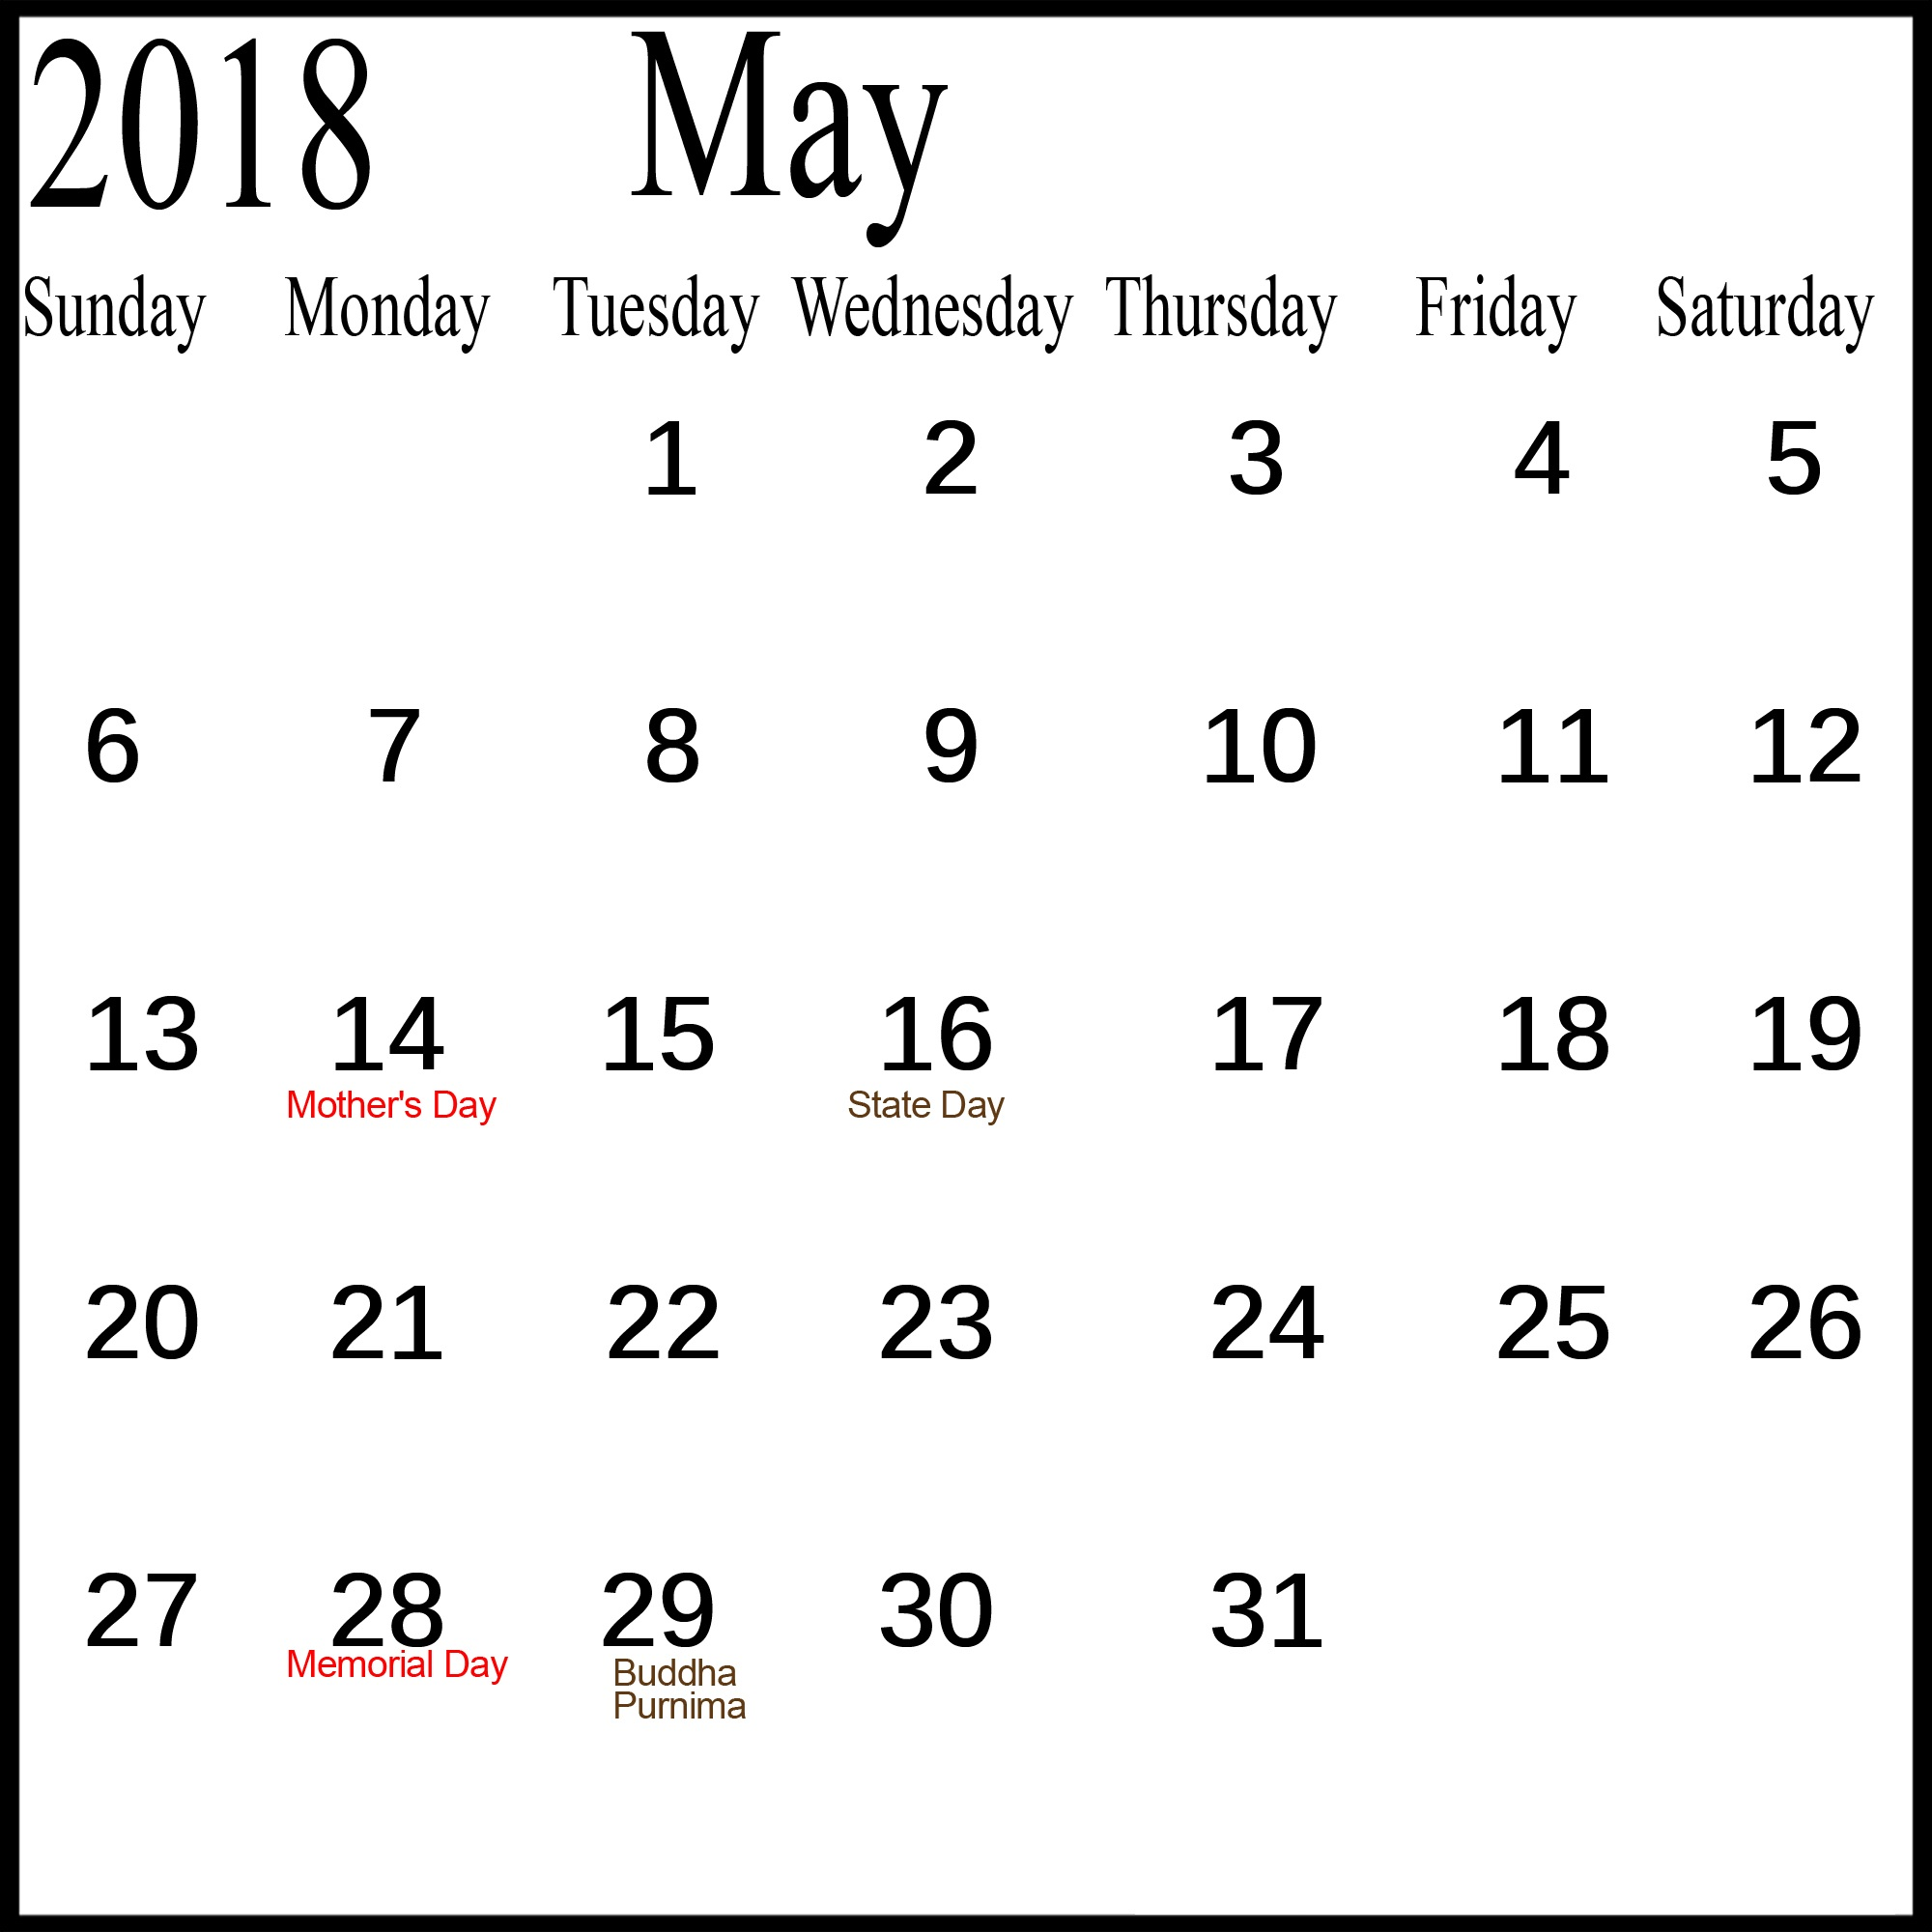 2018 May Calendar With Holidays